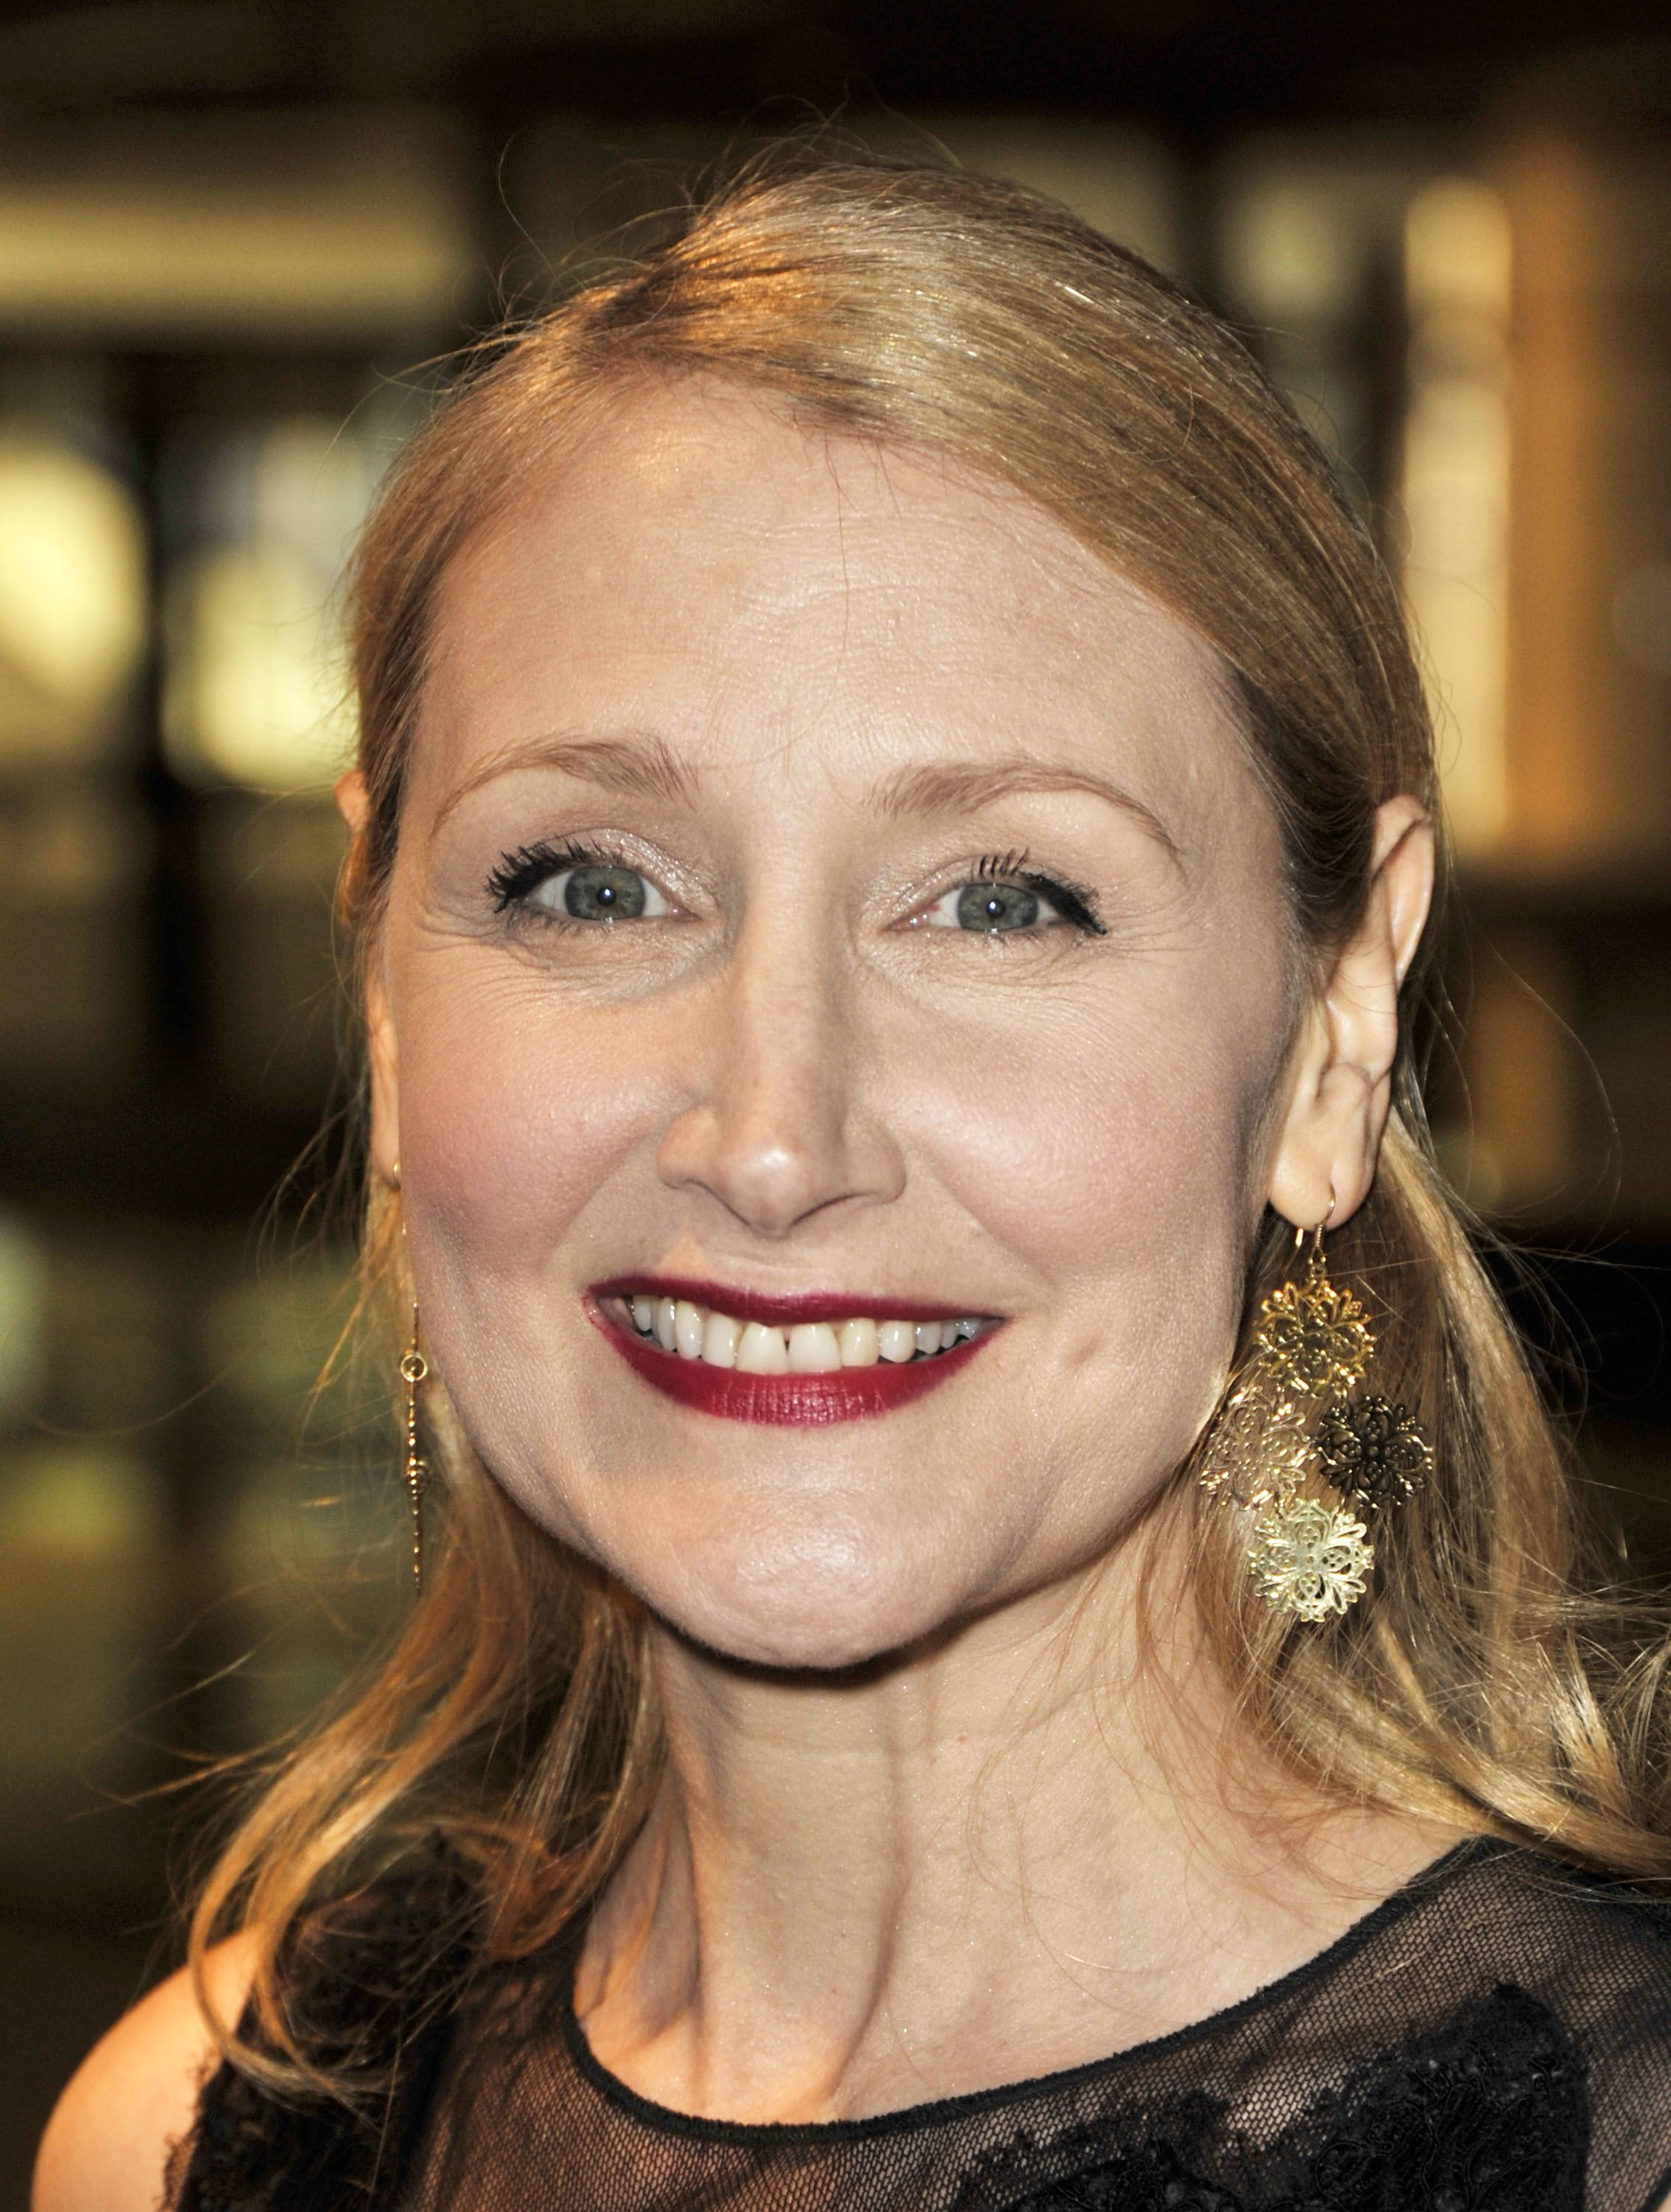 patricia clarkson images - HD2266×3000